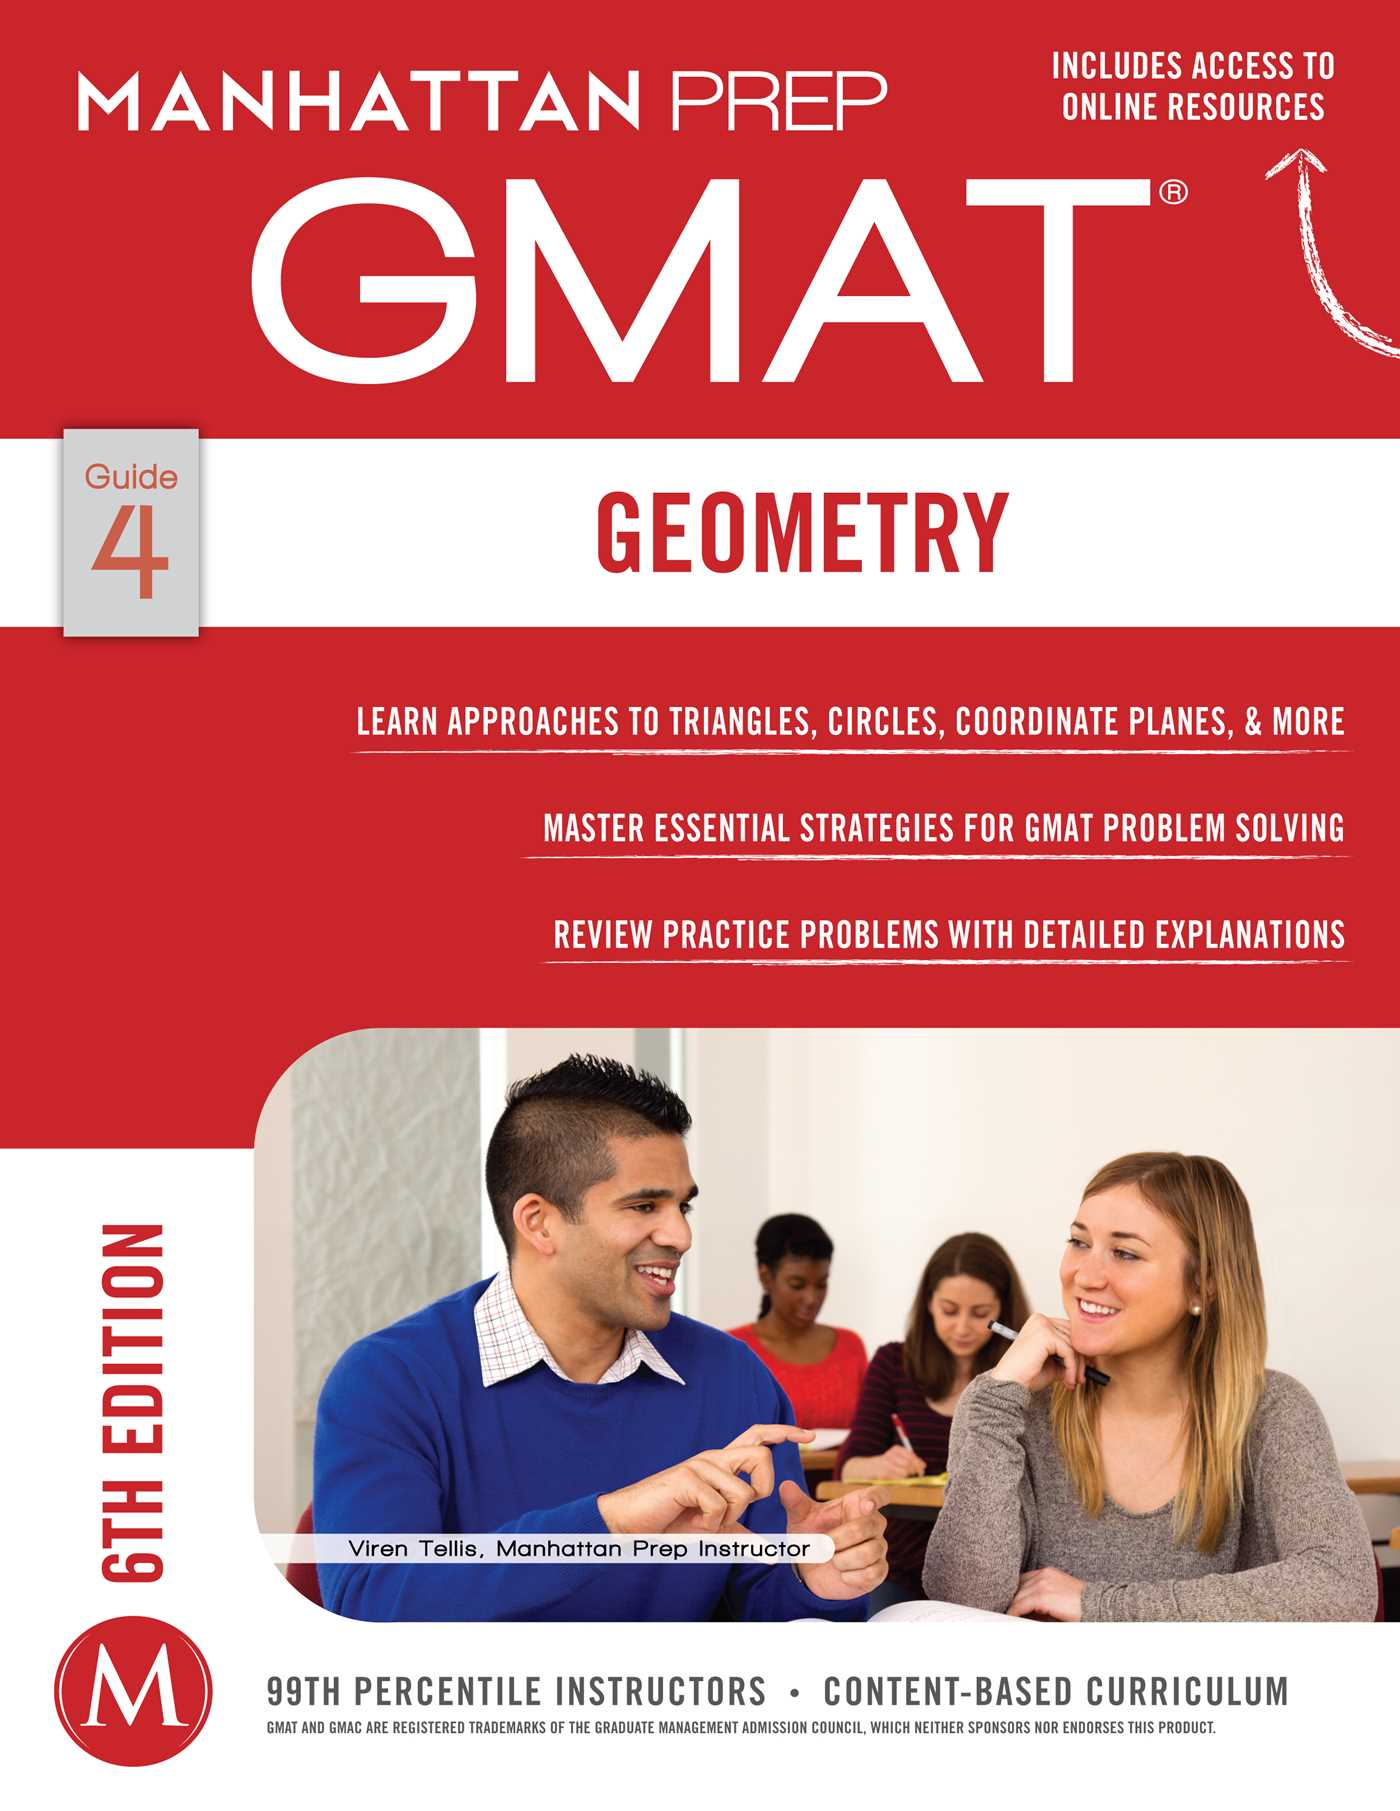 gmat prep Try a free gmat prep class and see why more people choose manhattan prep than any other gmat company learn from the world's top gmat instructors.